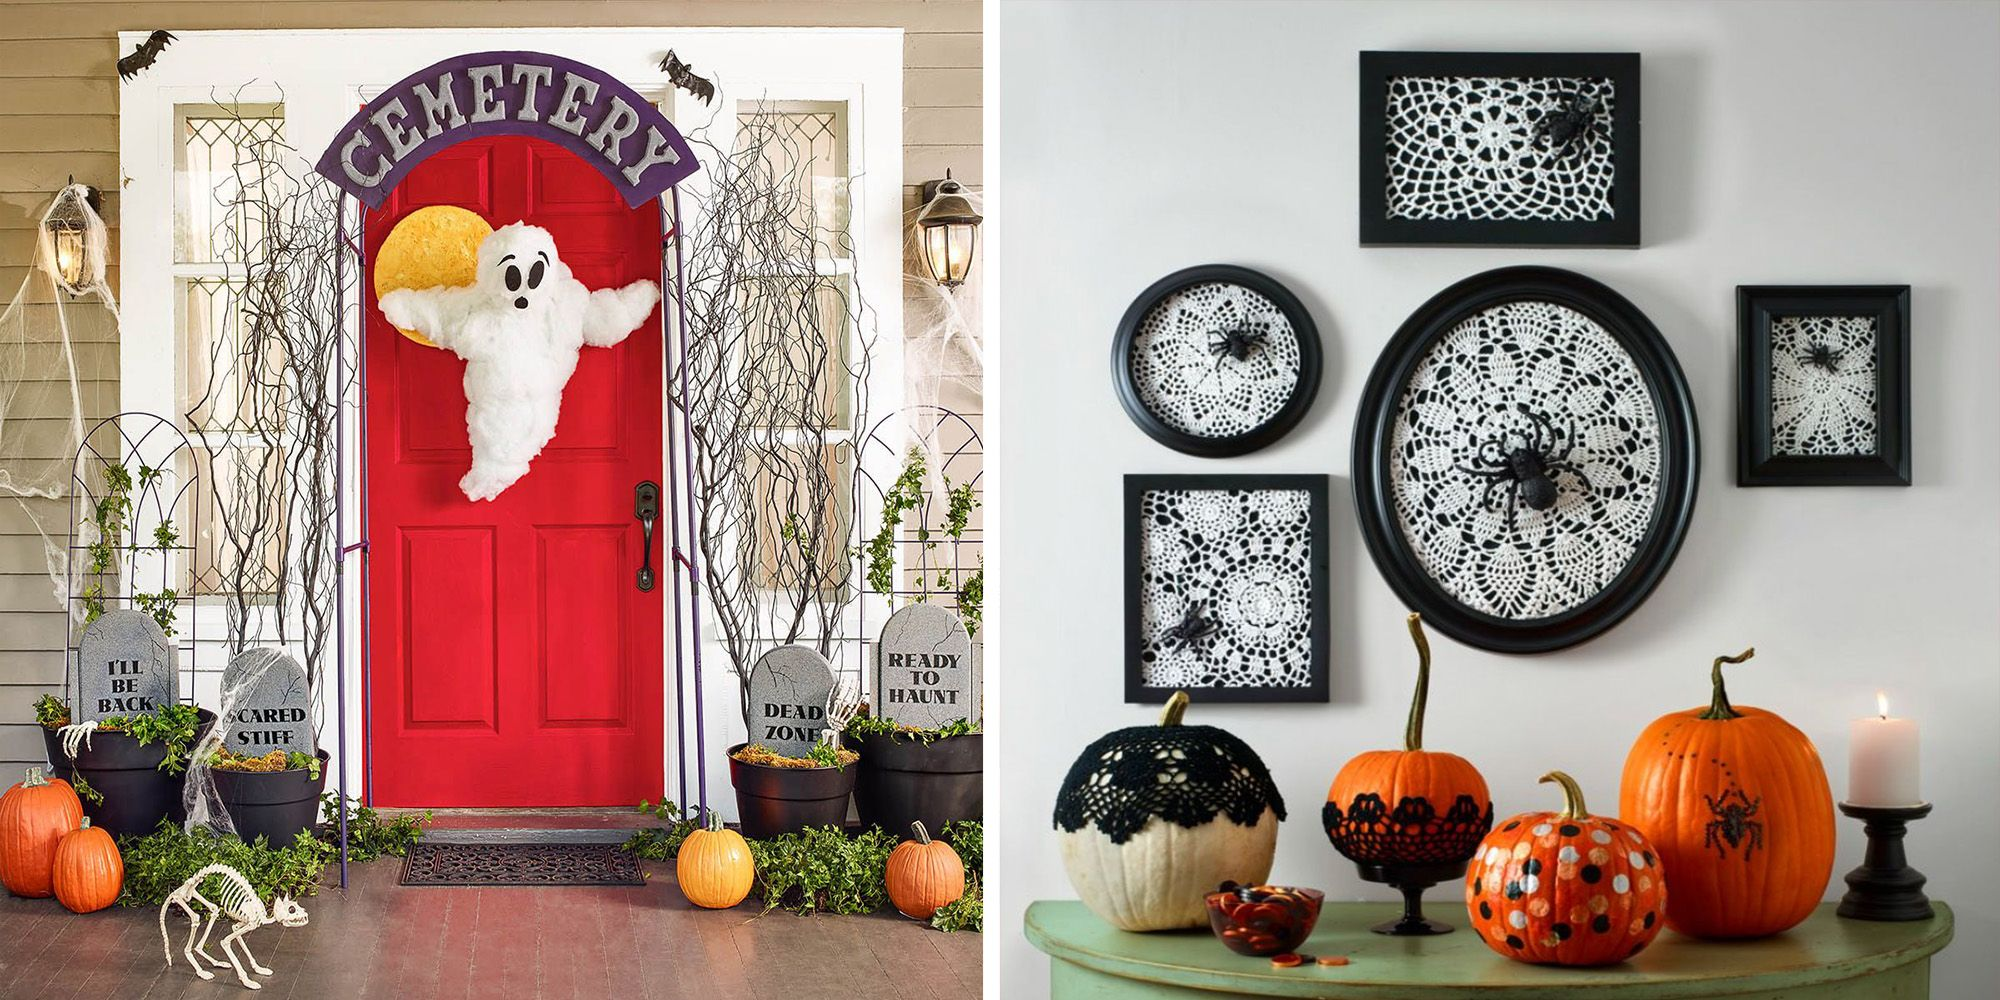 44 Easy Halloween Decorations — Spooky Home Decor Ideas for